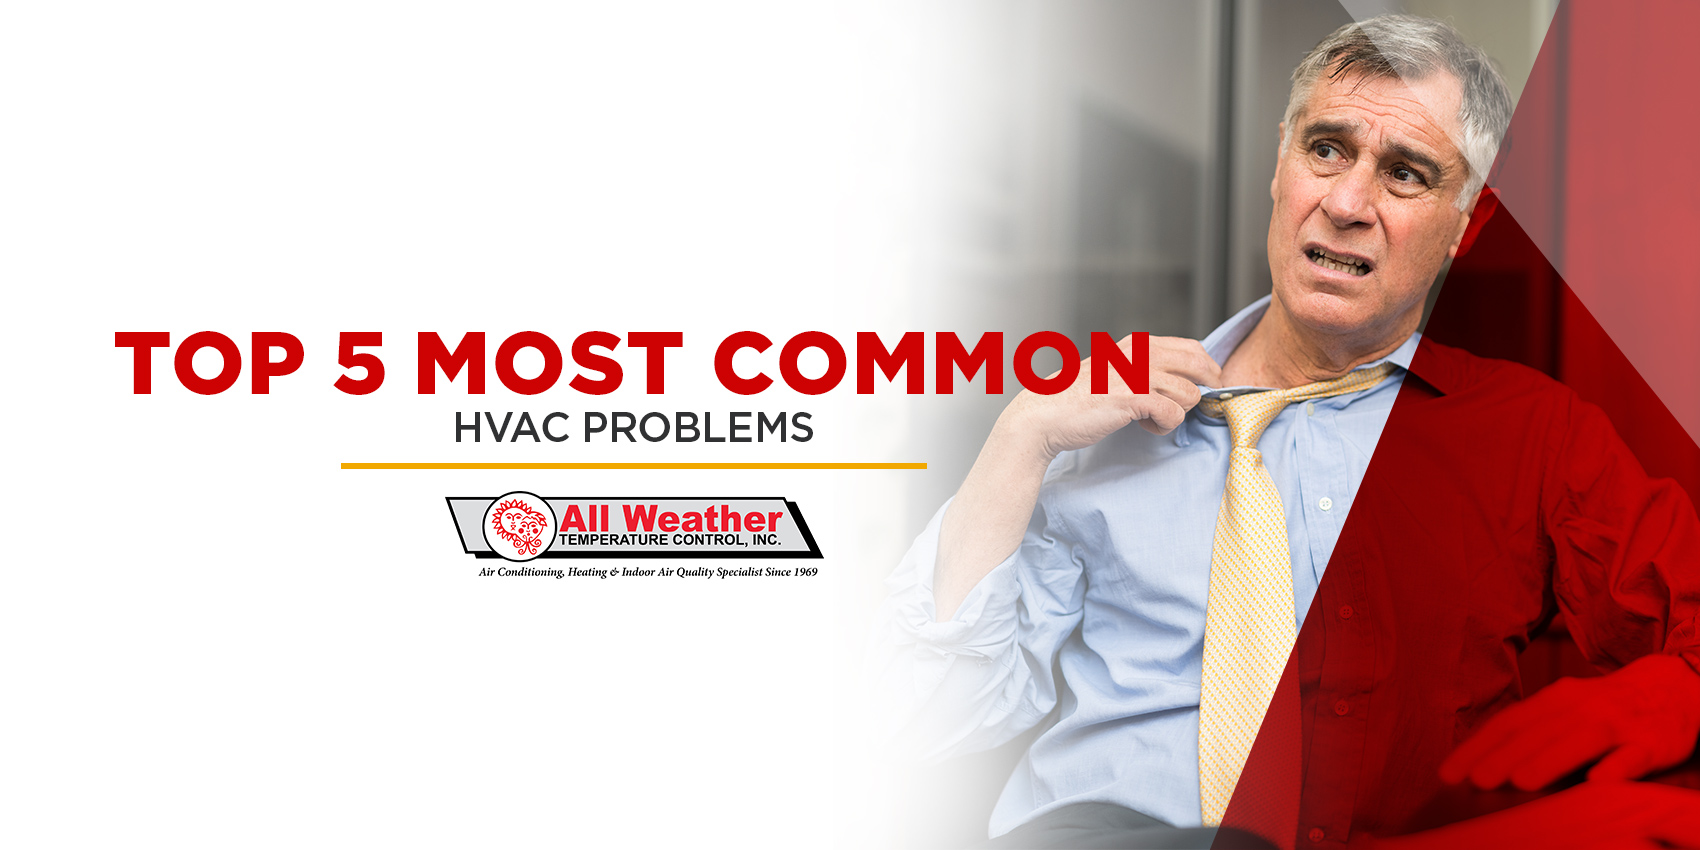 Top 5 Most Common HVAC Problems